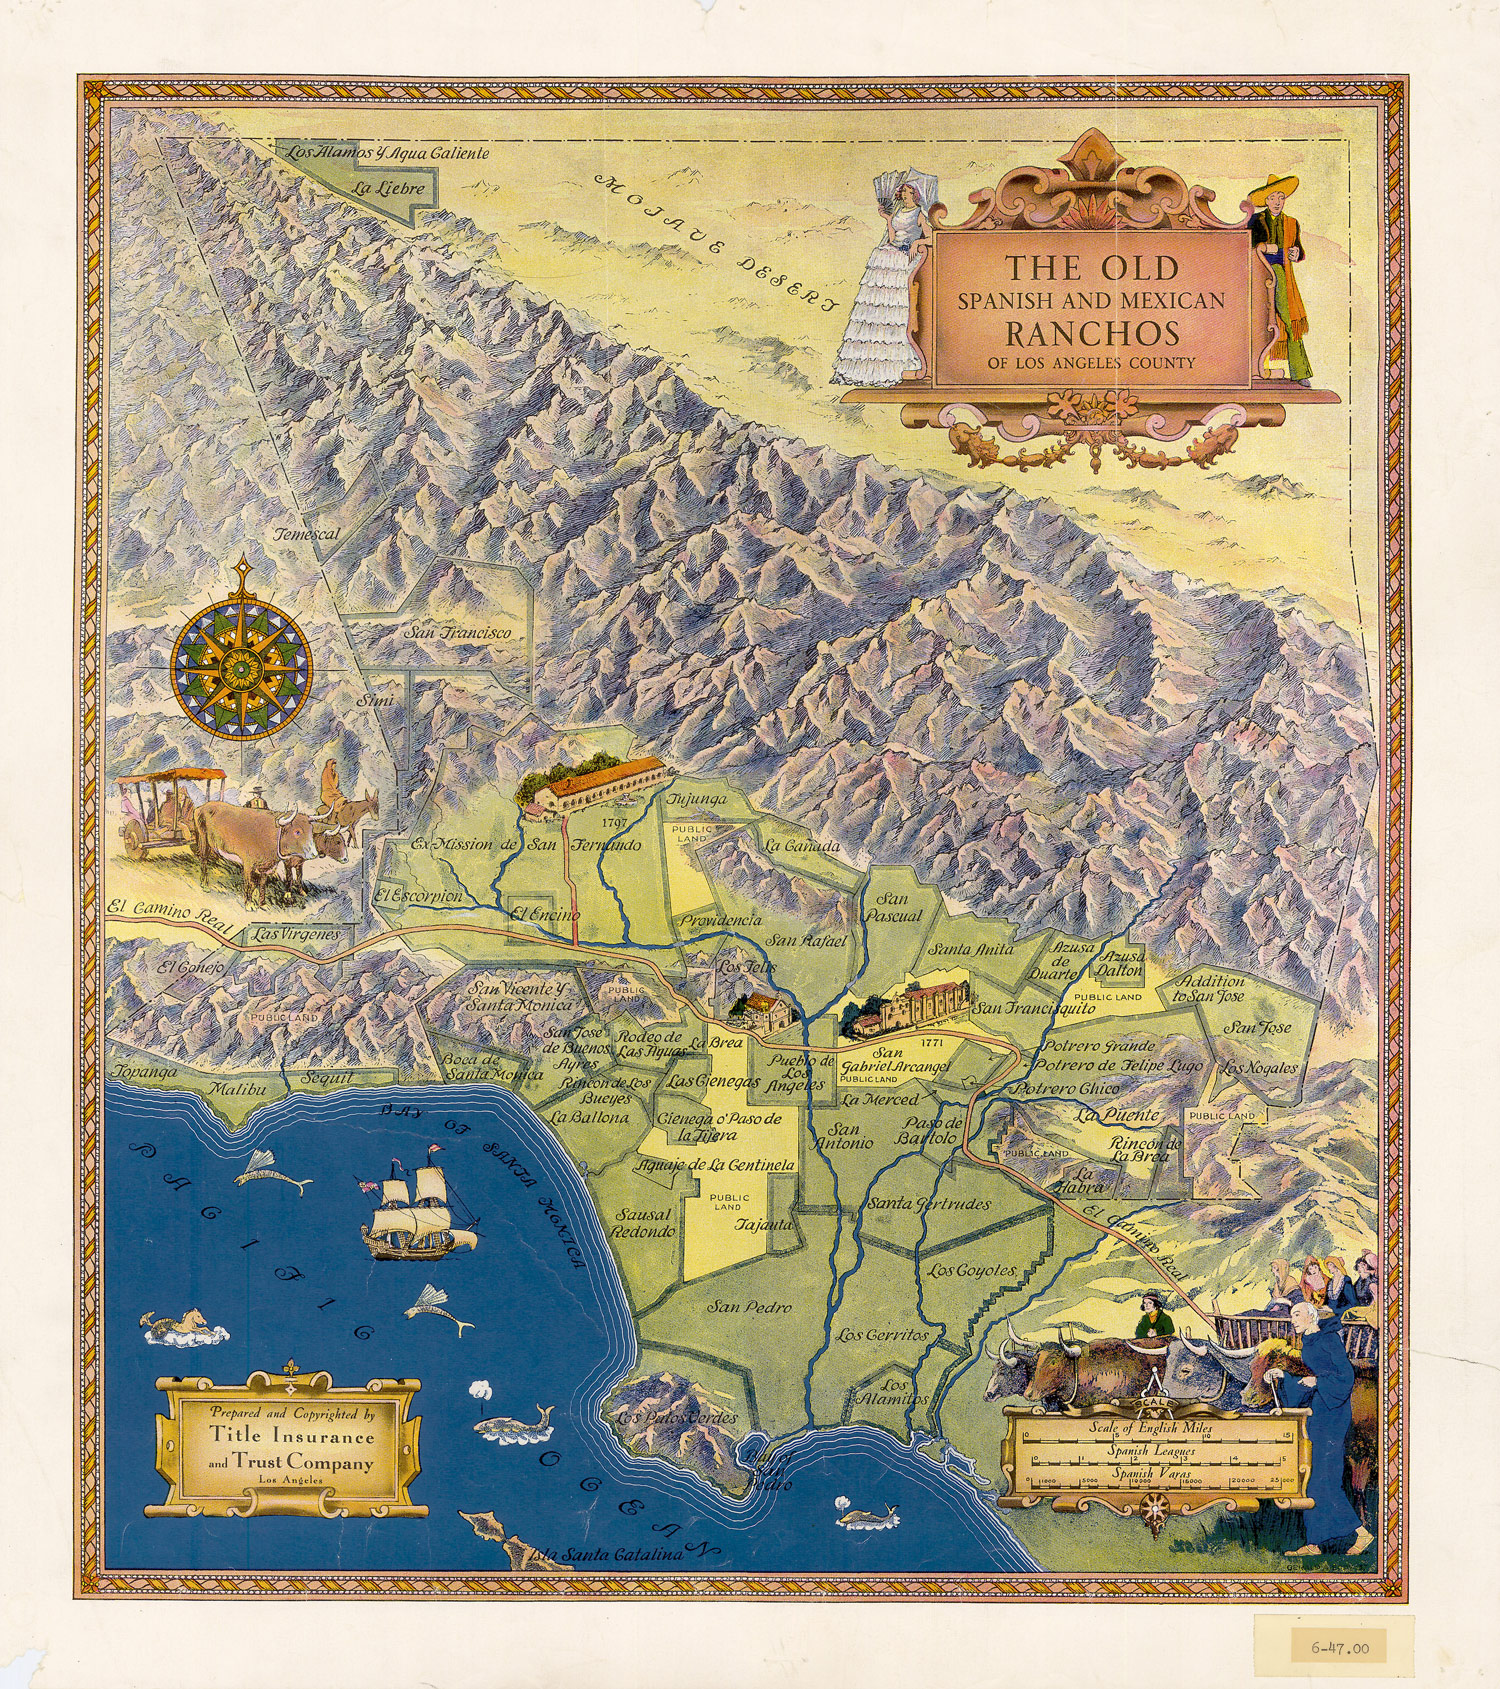 This Gorgeous Map Will Make You Nostalgic For LAs Old Rancho - City of los angeles jurisdiction map